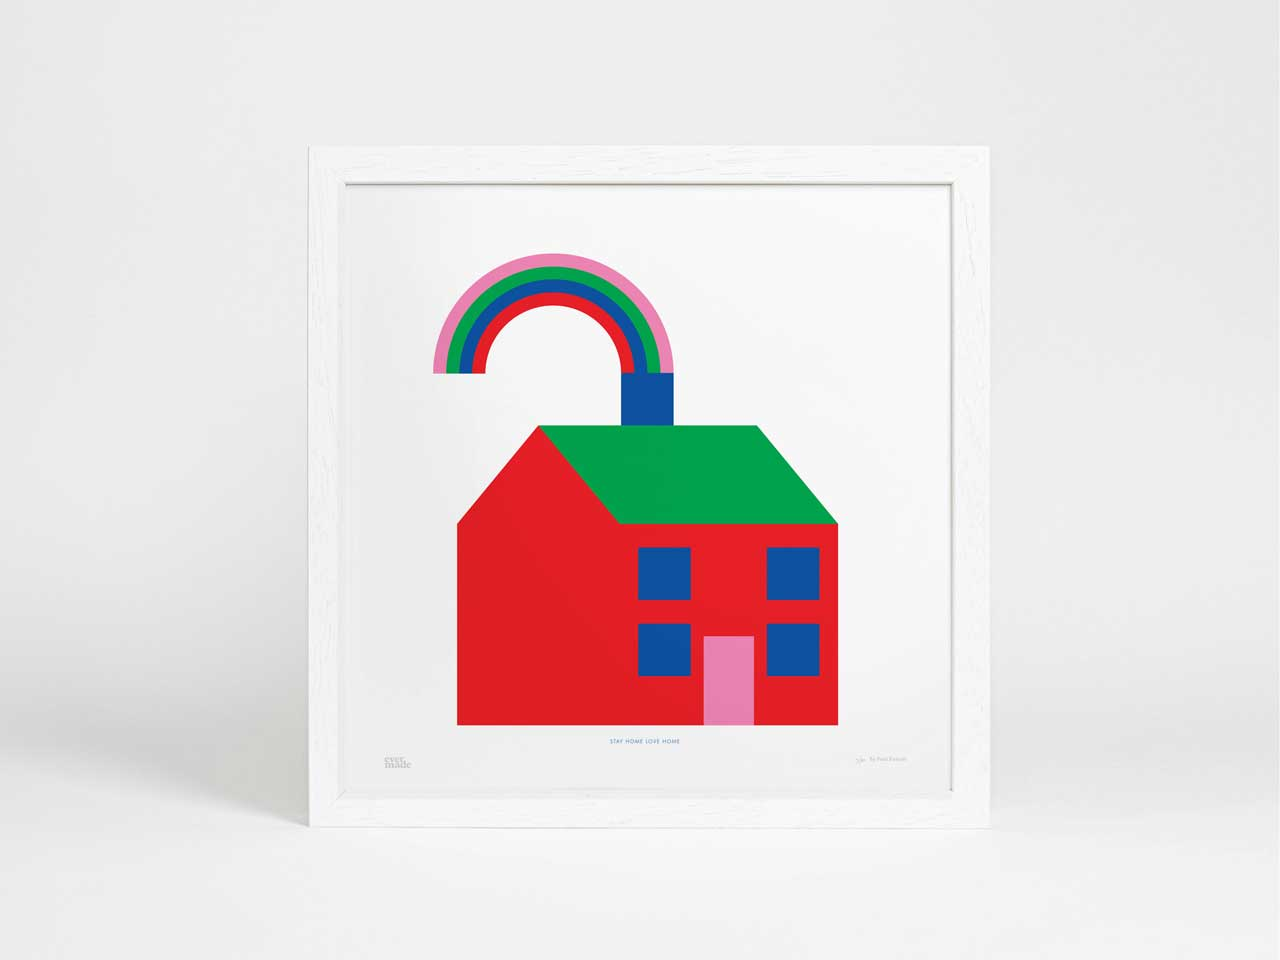 Evermade Rainbow Art Prints to Support Frontline Workers of the NHS